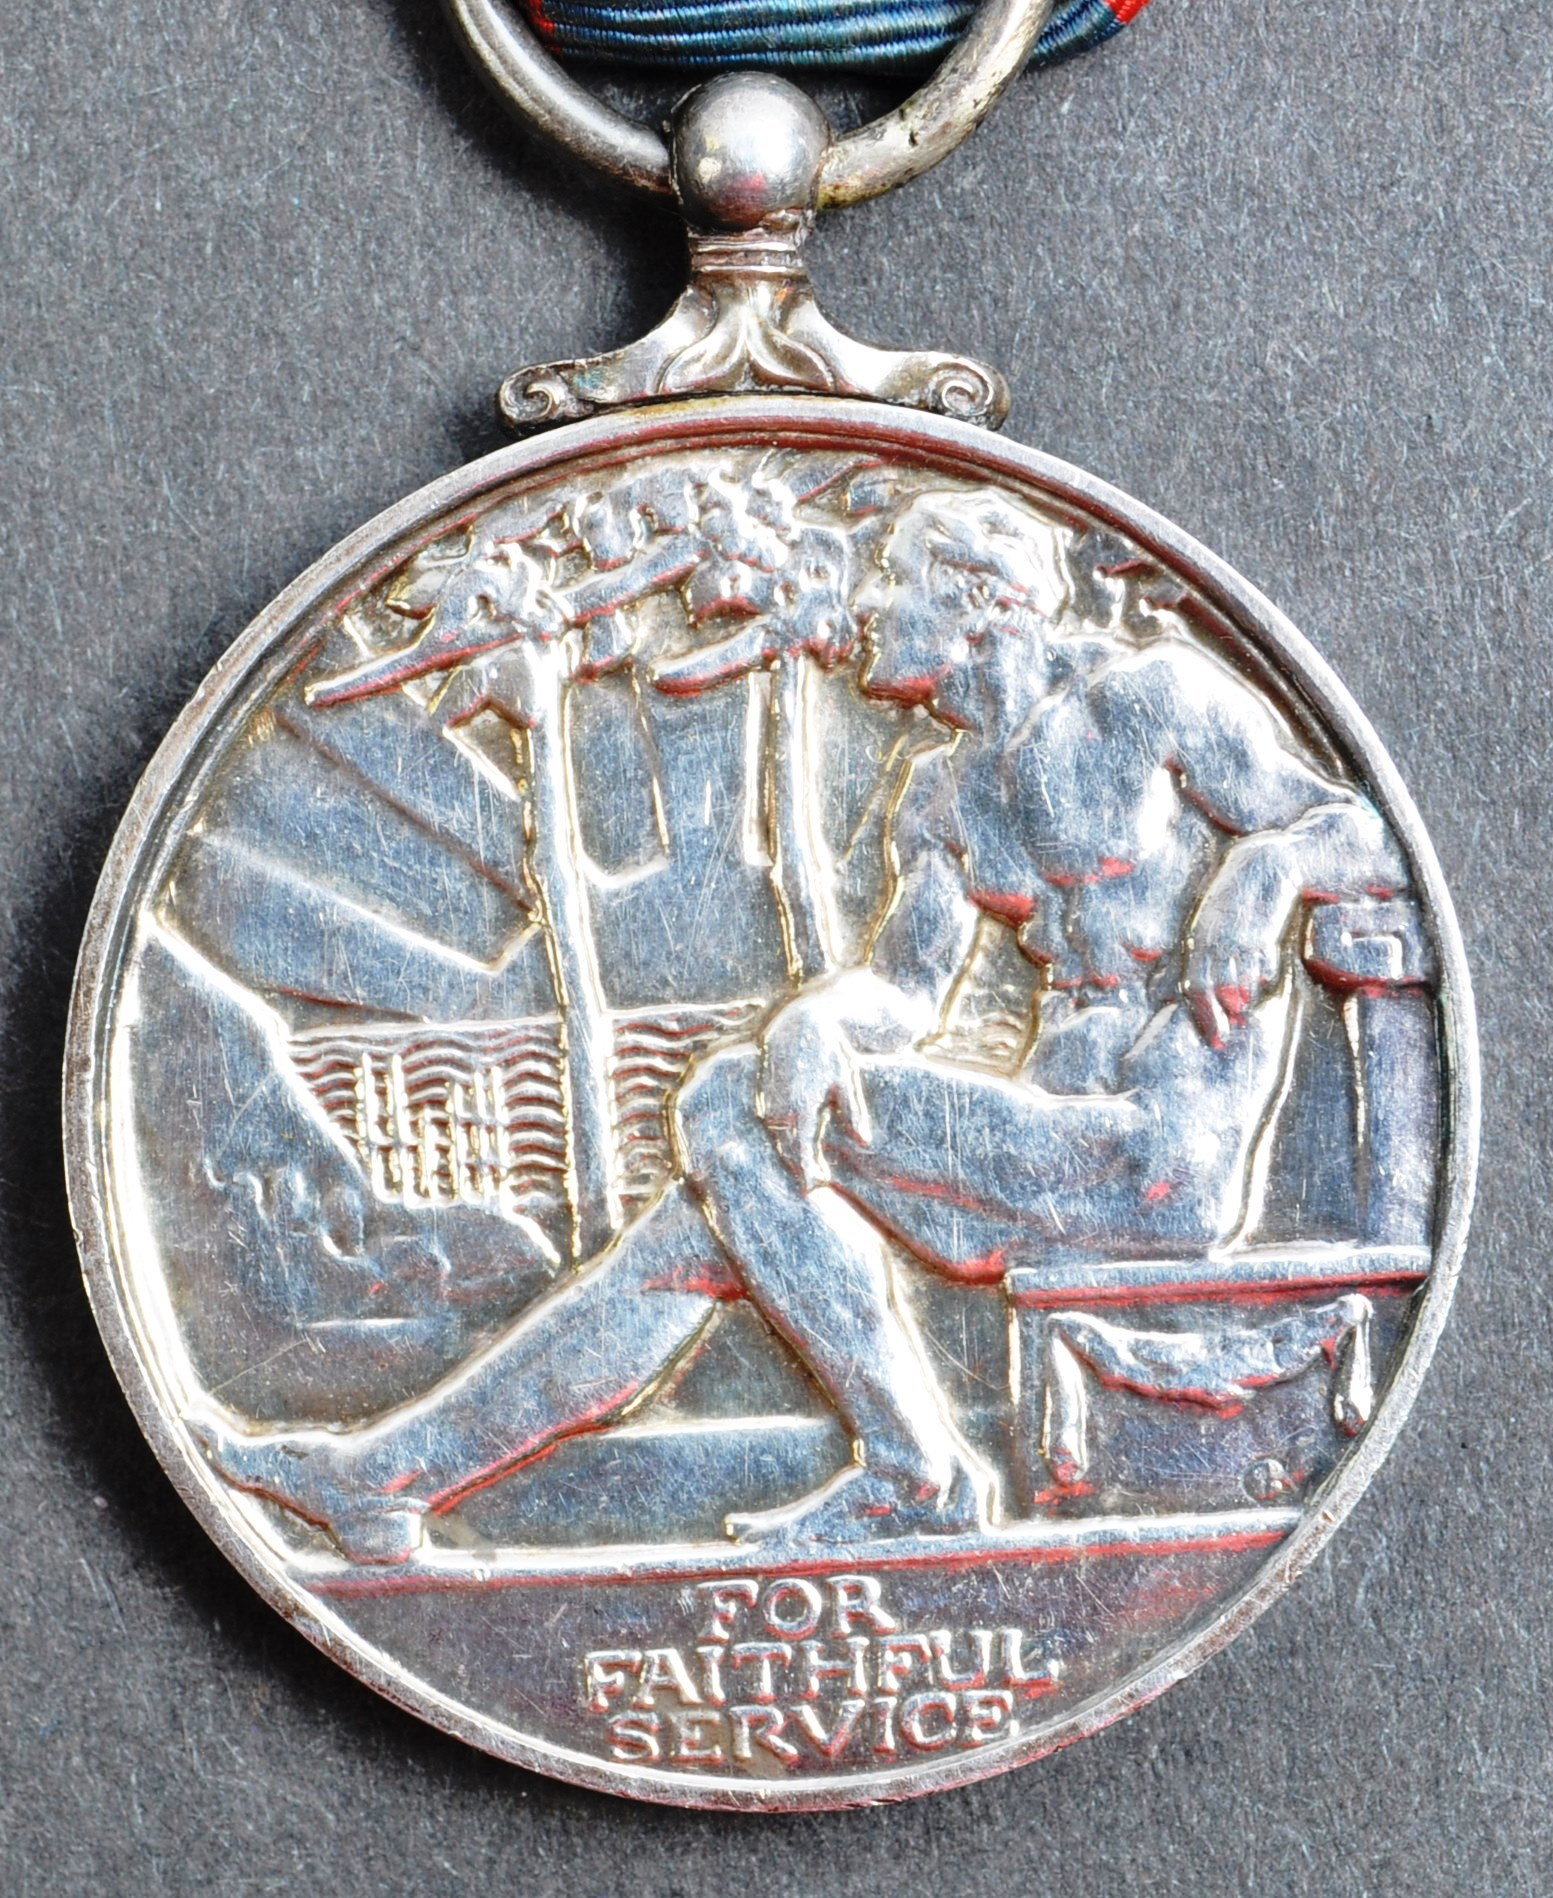 WWI FIRST WORLD WAR MEDAL GROUP - LEADING SEAMAN ROYAL NAVY - Image 7 of 10